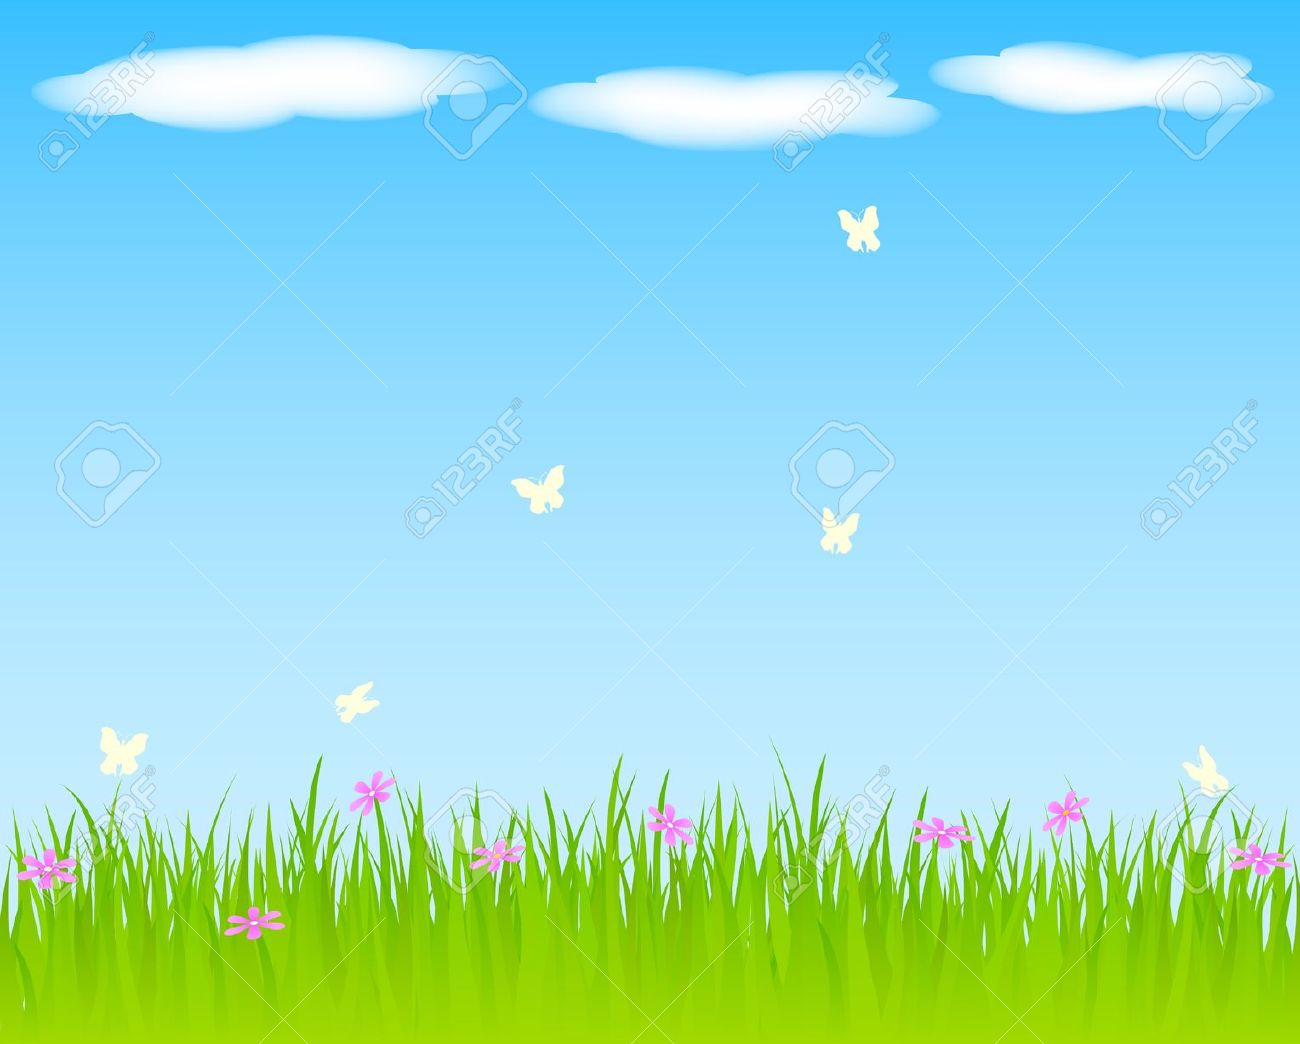 Clipart backgrounds images clipart black and white stock Free Springtime Background Cliparts, Download Free Clip Art, Free ... clipart black and white stock